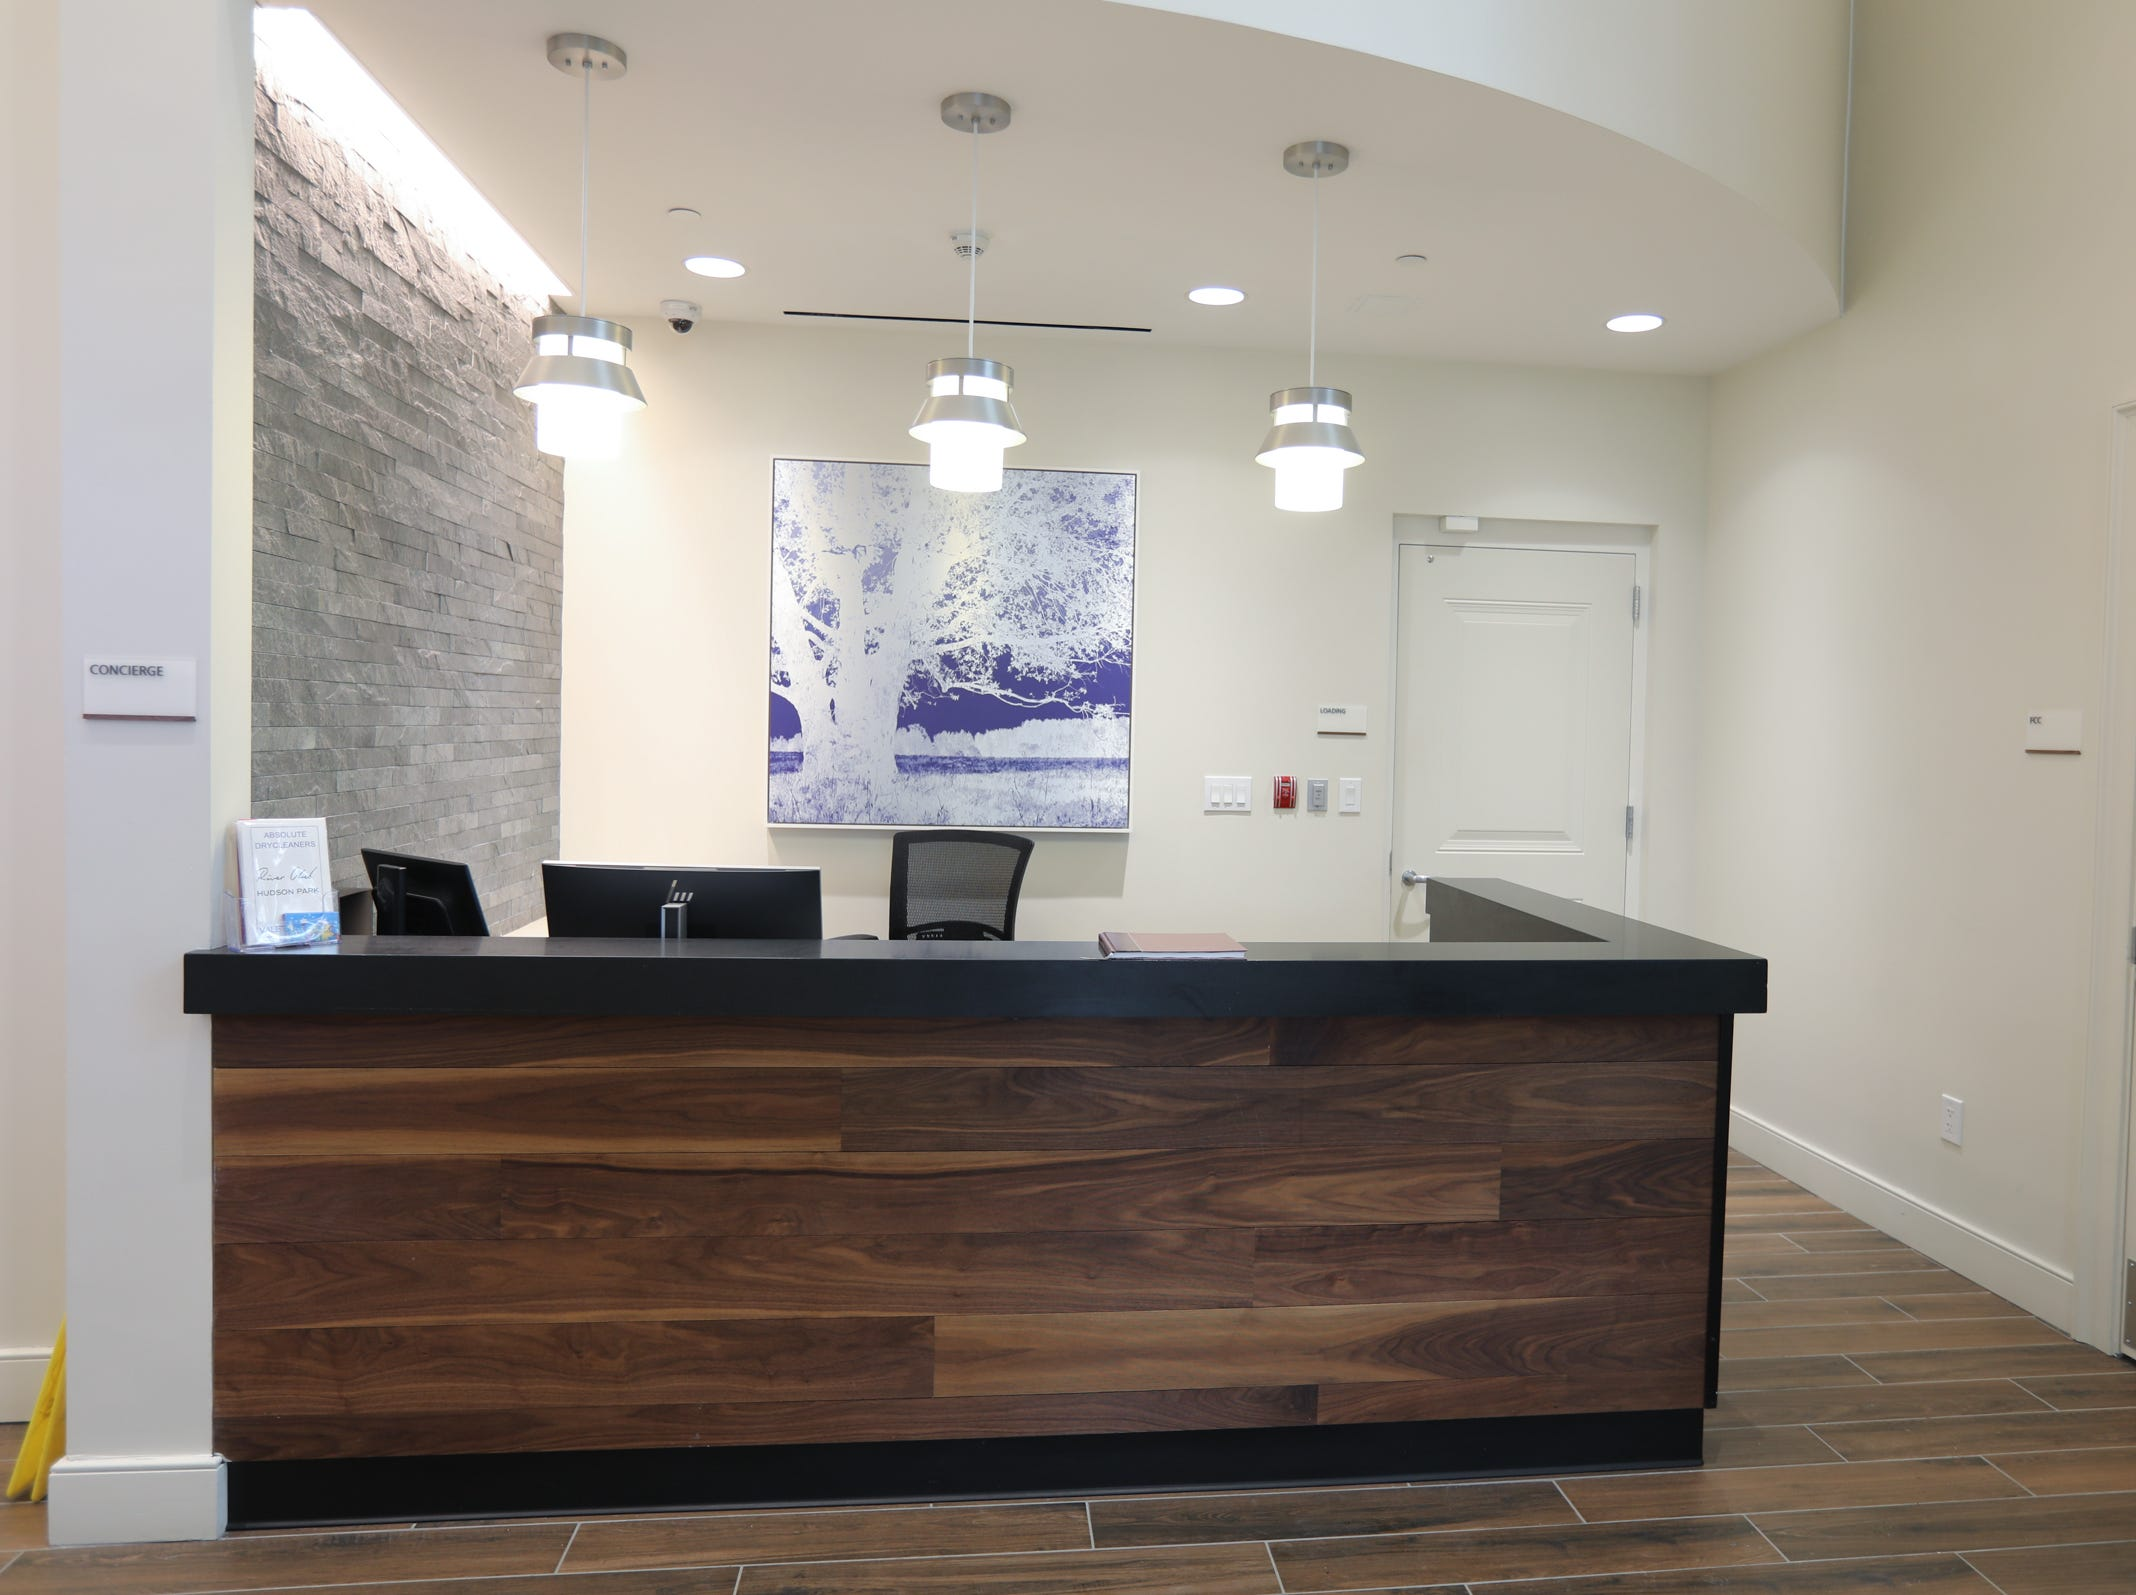 The concierge desk in the lobby at The River Club at Hudson Park in Yonkers on Friday, February 15, 2019.